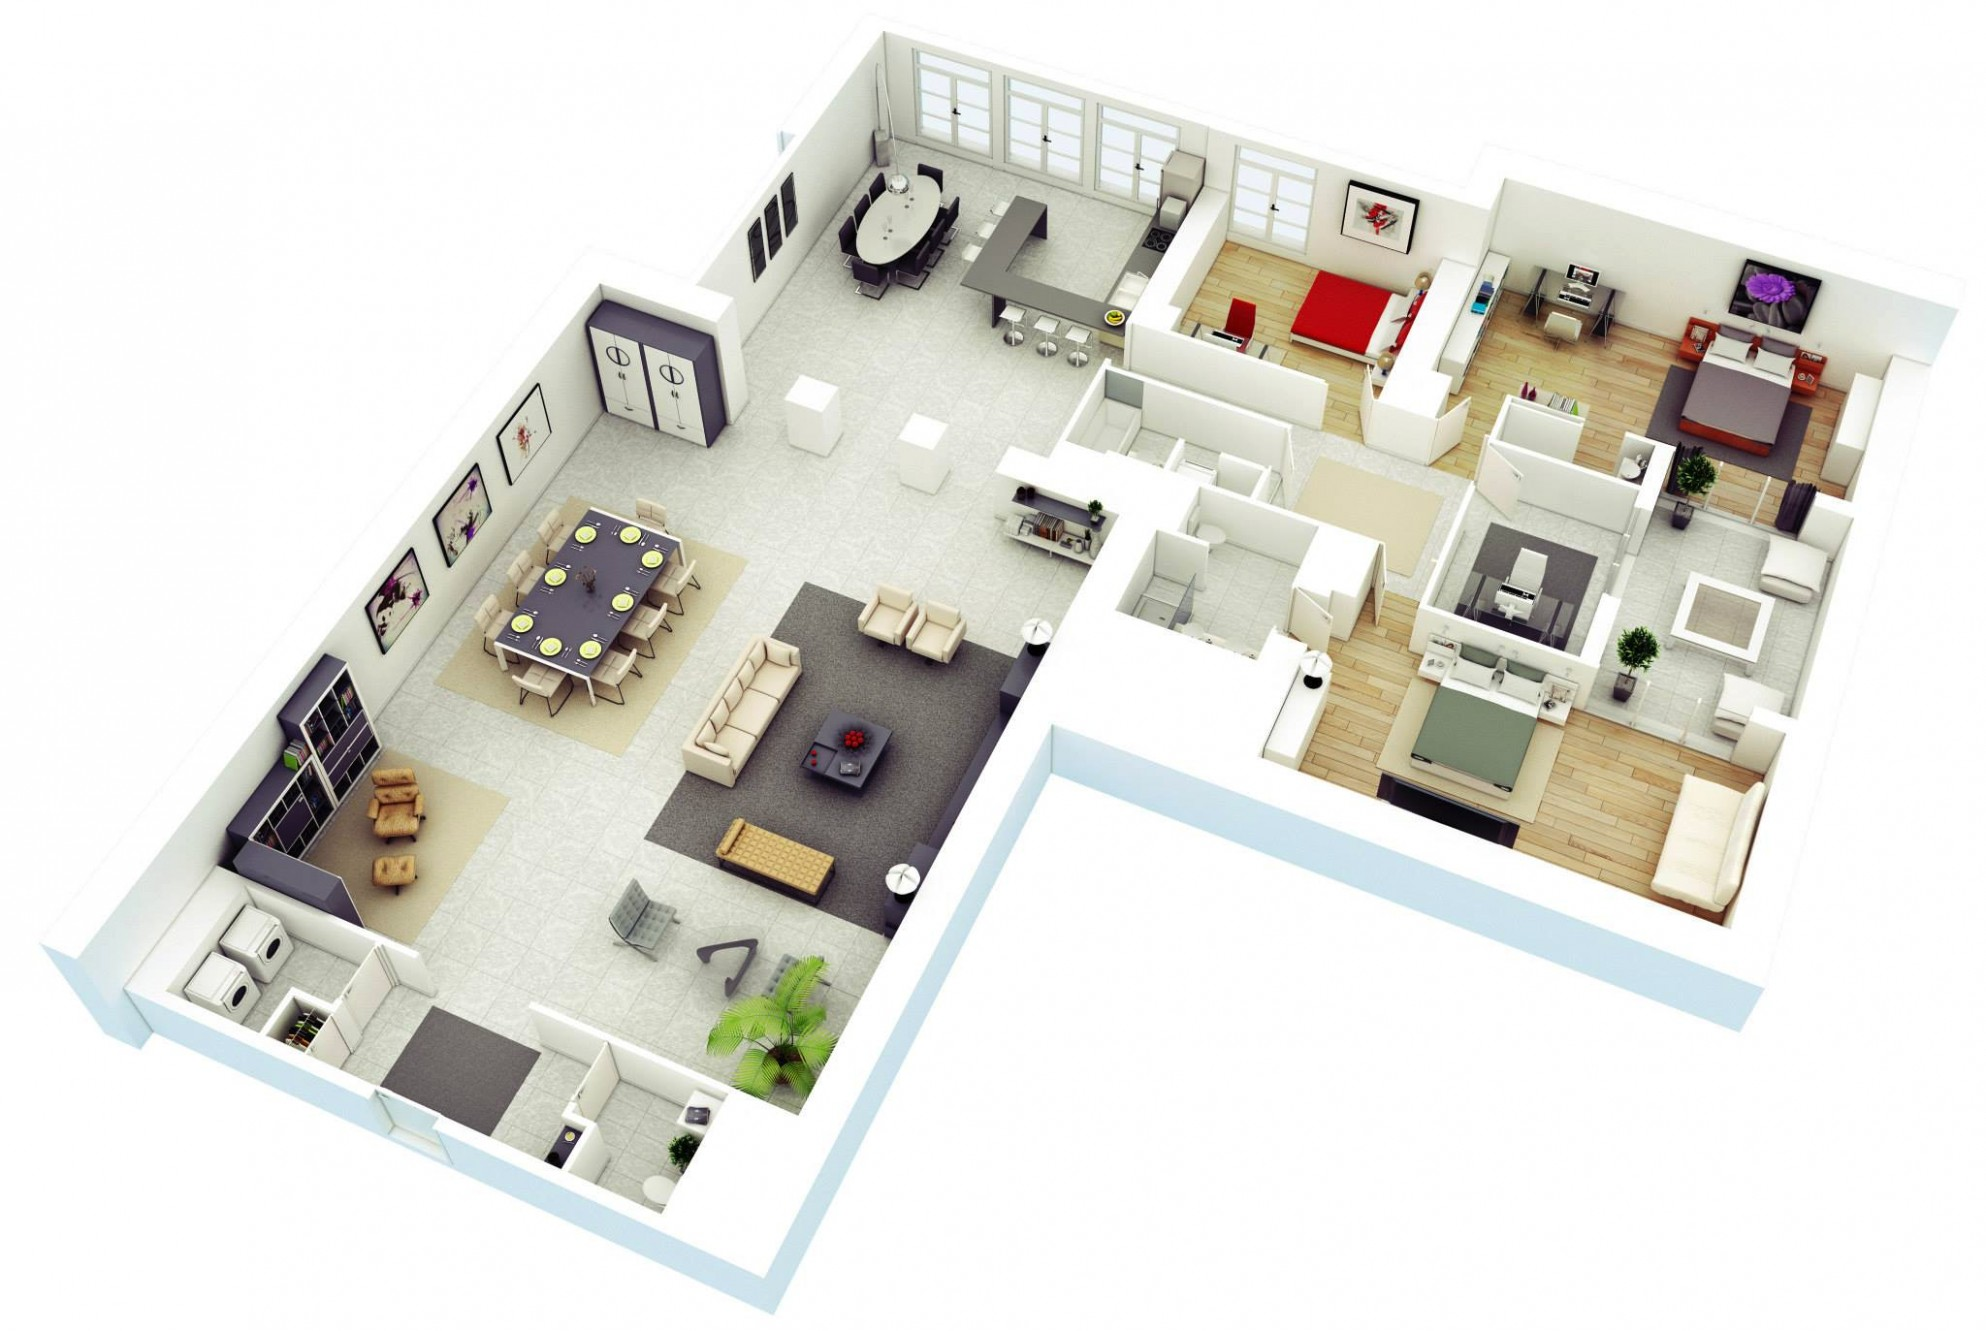 11 Best Free Home and Interior Design Apps, Software and Tools - Apartment Design And Floor Plan